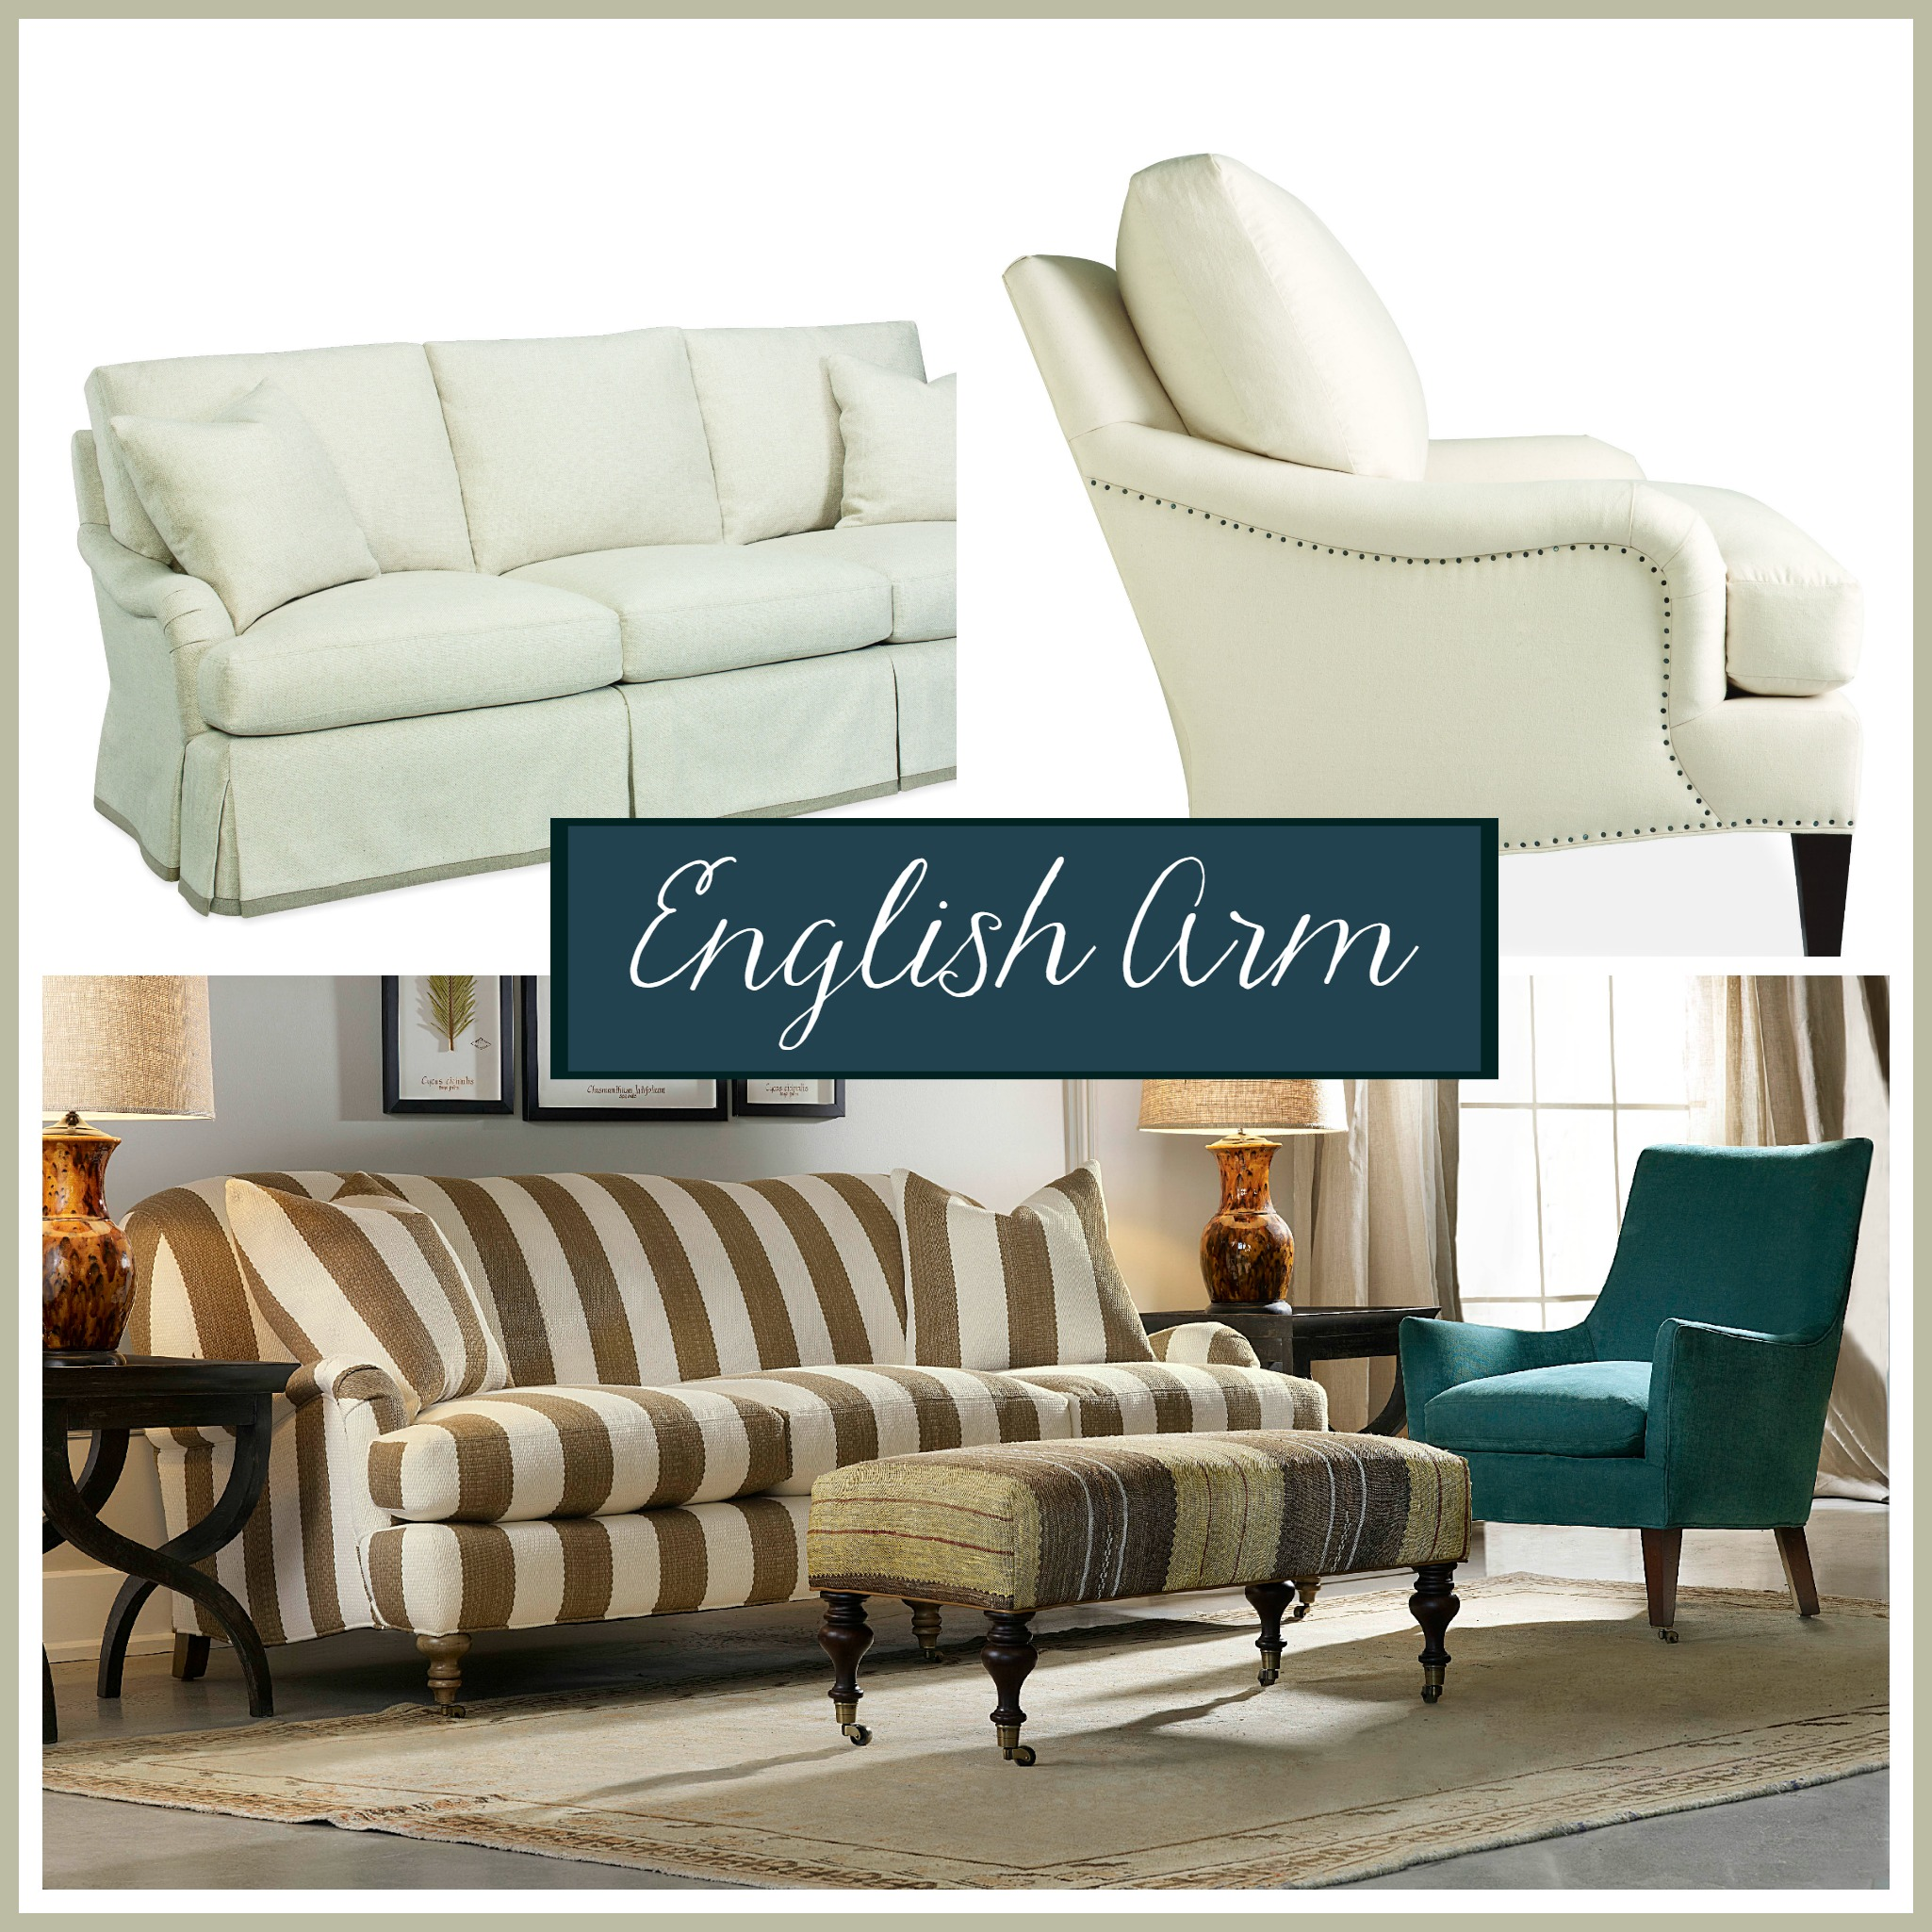 Sofa arm style: The English arm | The Stated Home